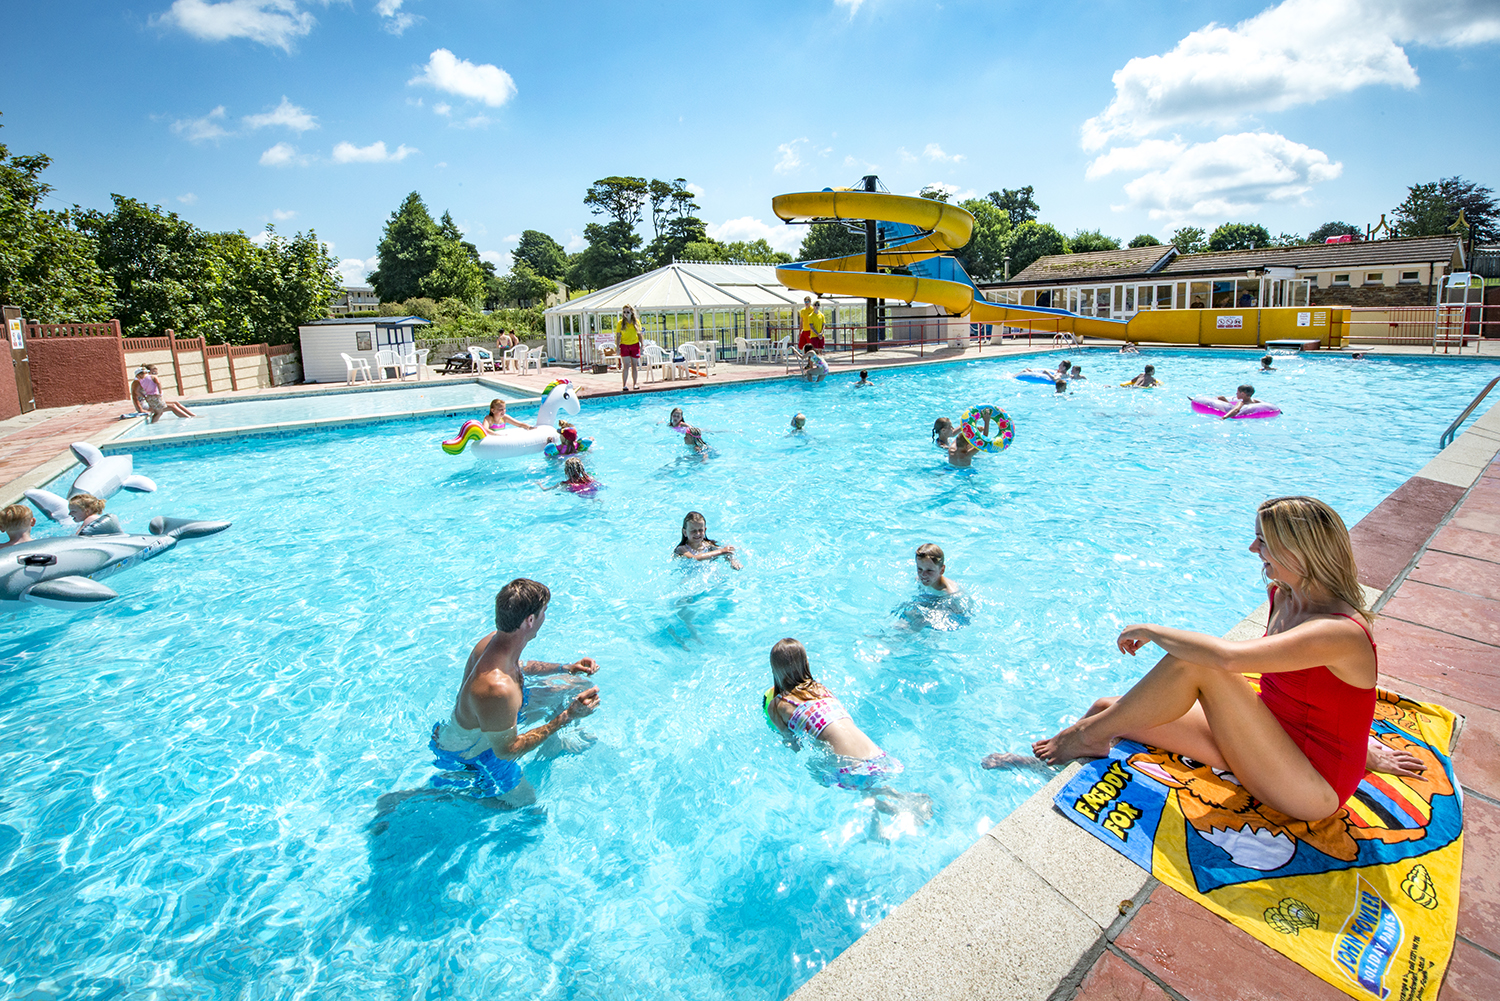 Trelawne manor holiday park - The quays swimming pool timetable ...